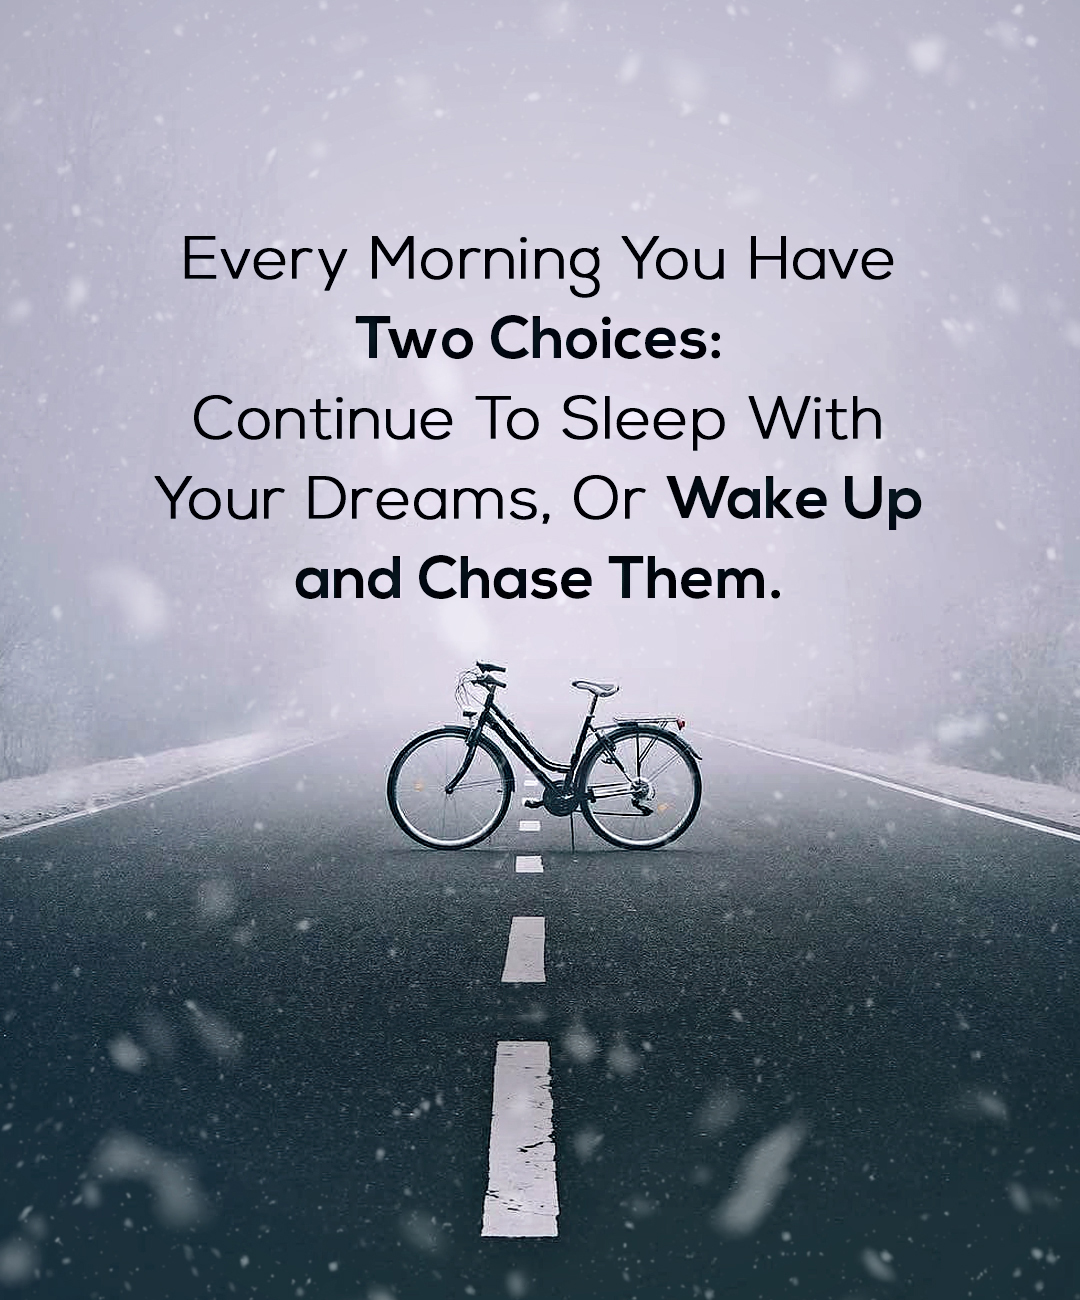 Every morning you have two choices: continue to sleep with your dreams or wake up and chase them. [1800×1300]